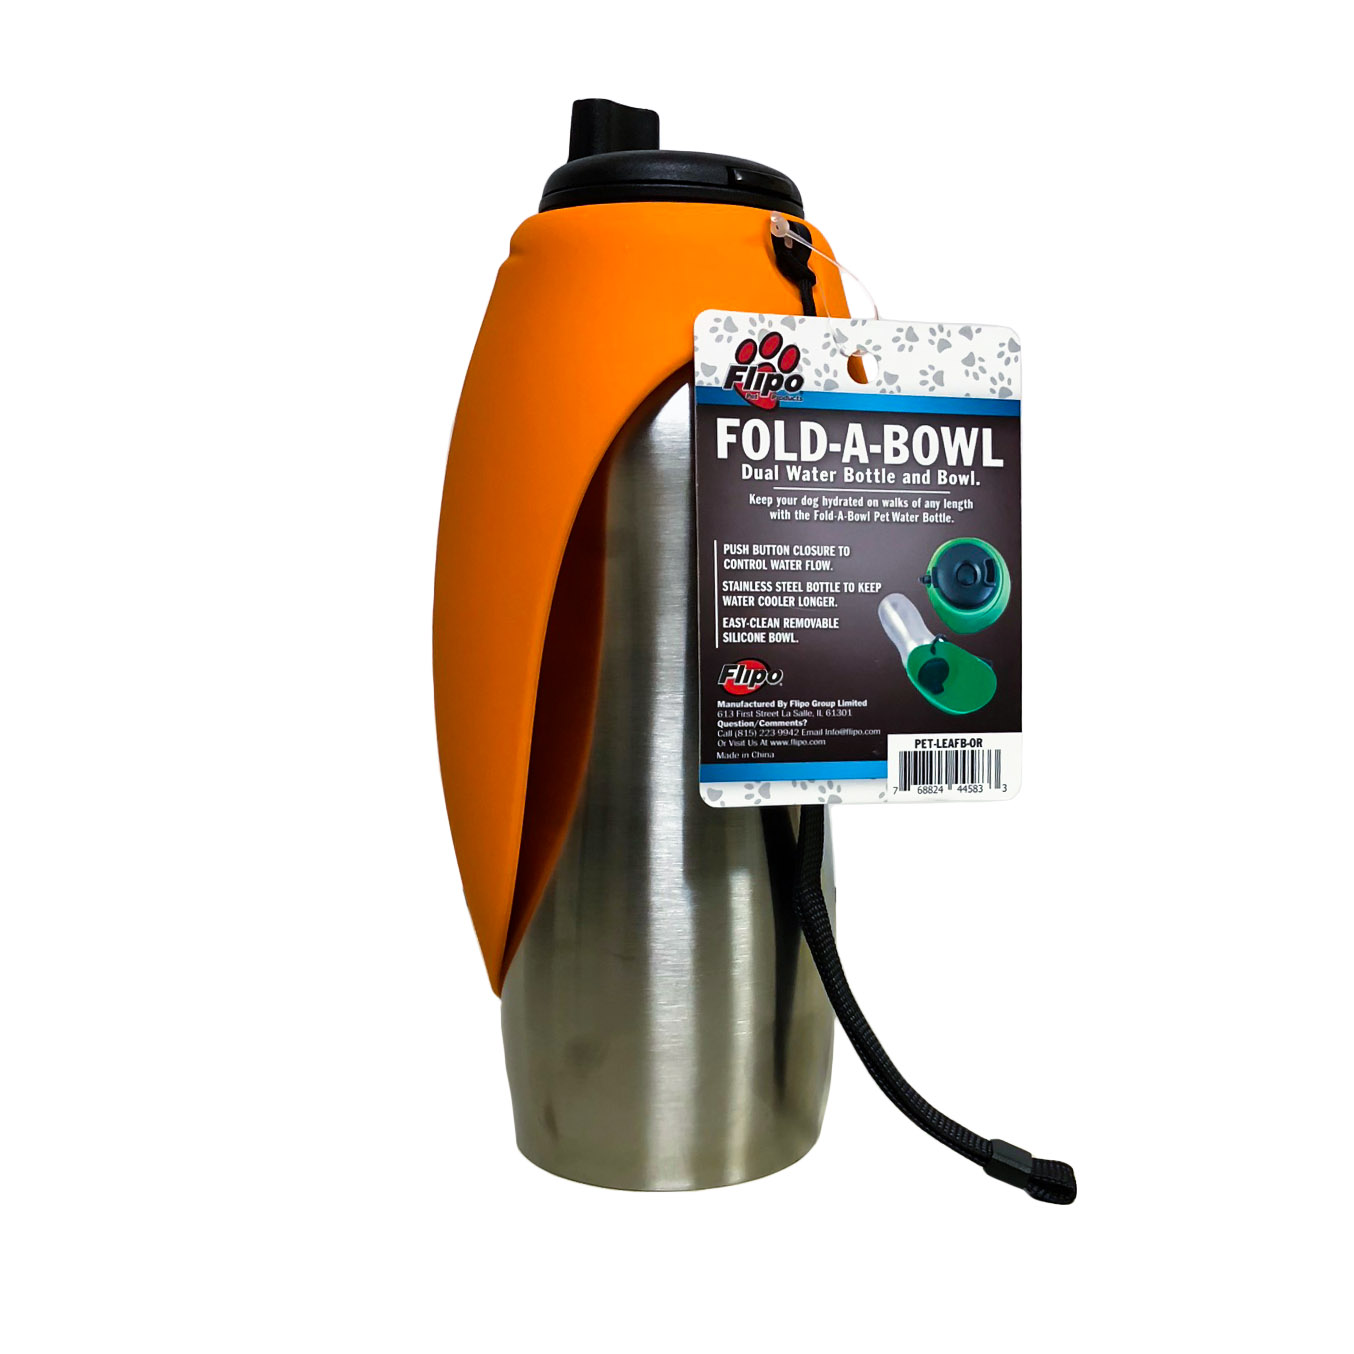 Portable Water Bottle And Bowl For Your Dog: Portable Pet Water Bottle And Bowl